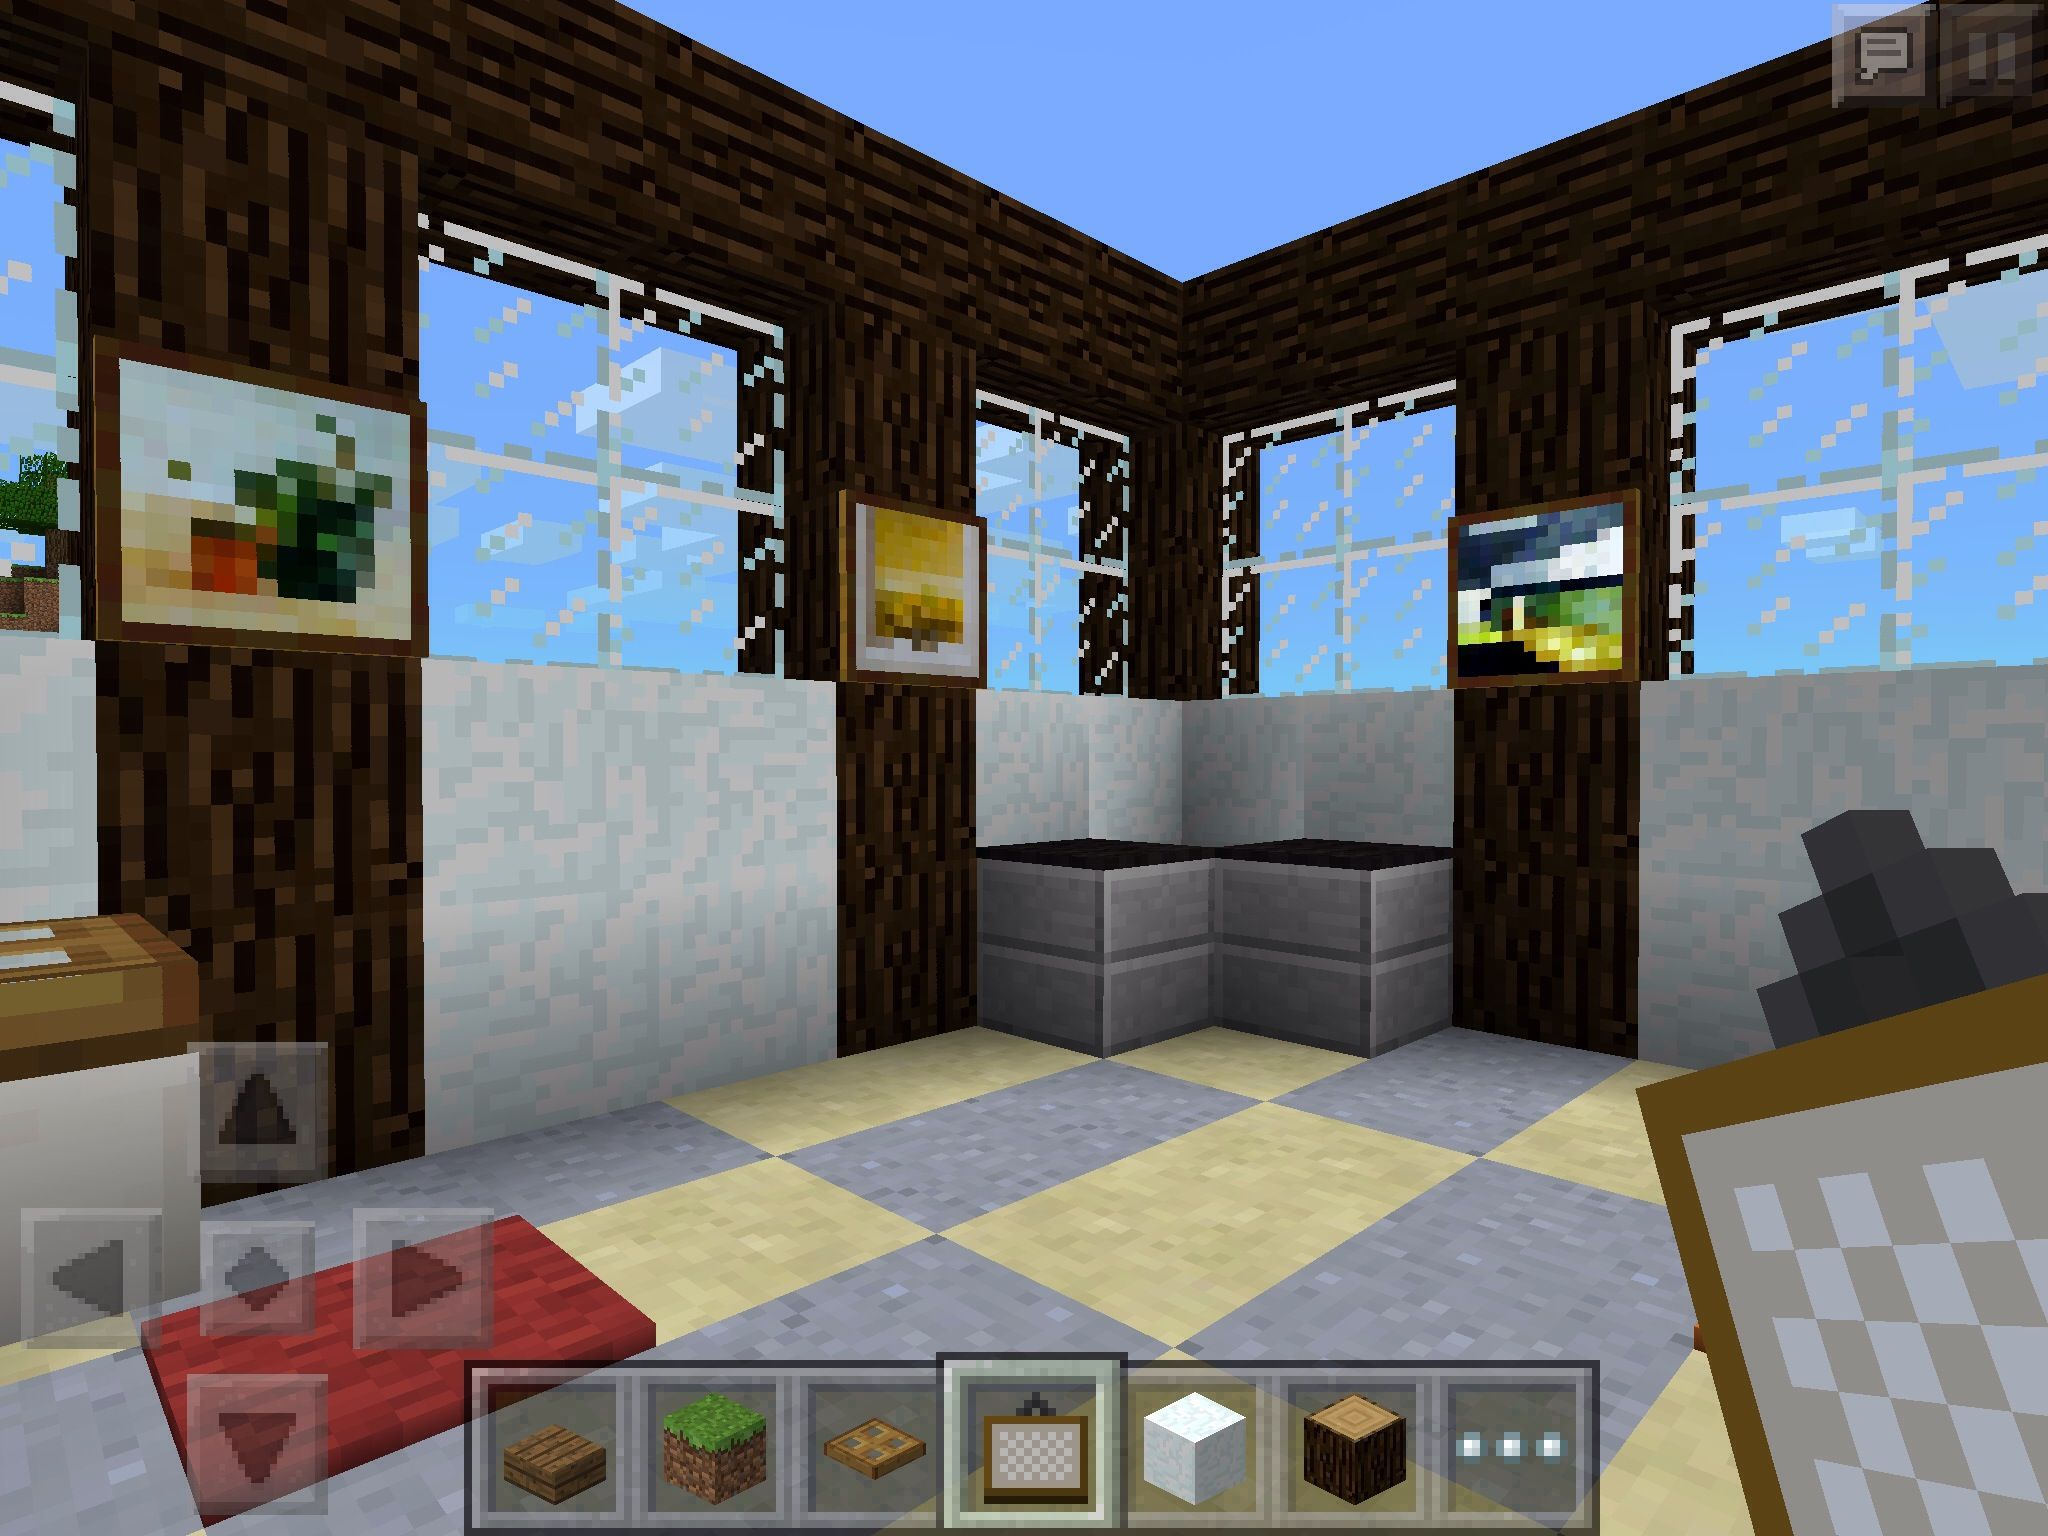 How To Build A Bathroom In Minecraft Pe Edition Minecraft House Designs Minecraft House Tutorials Minecraft Houses Blueprints